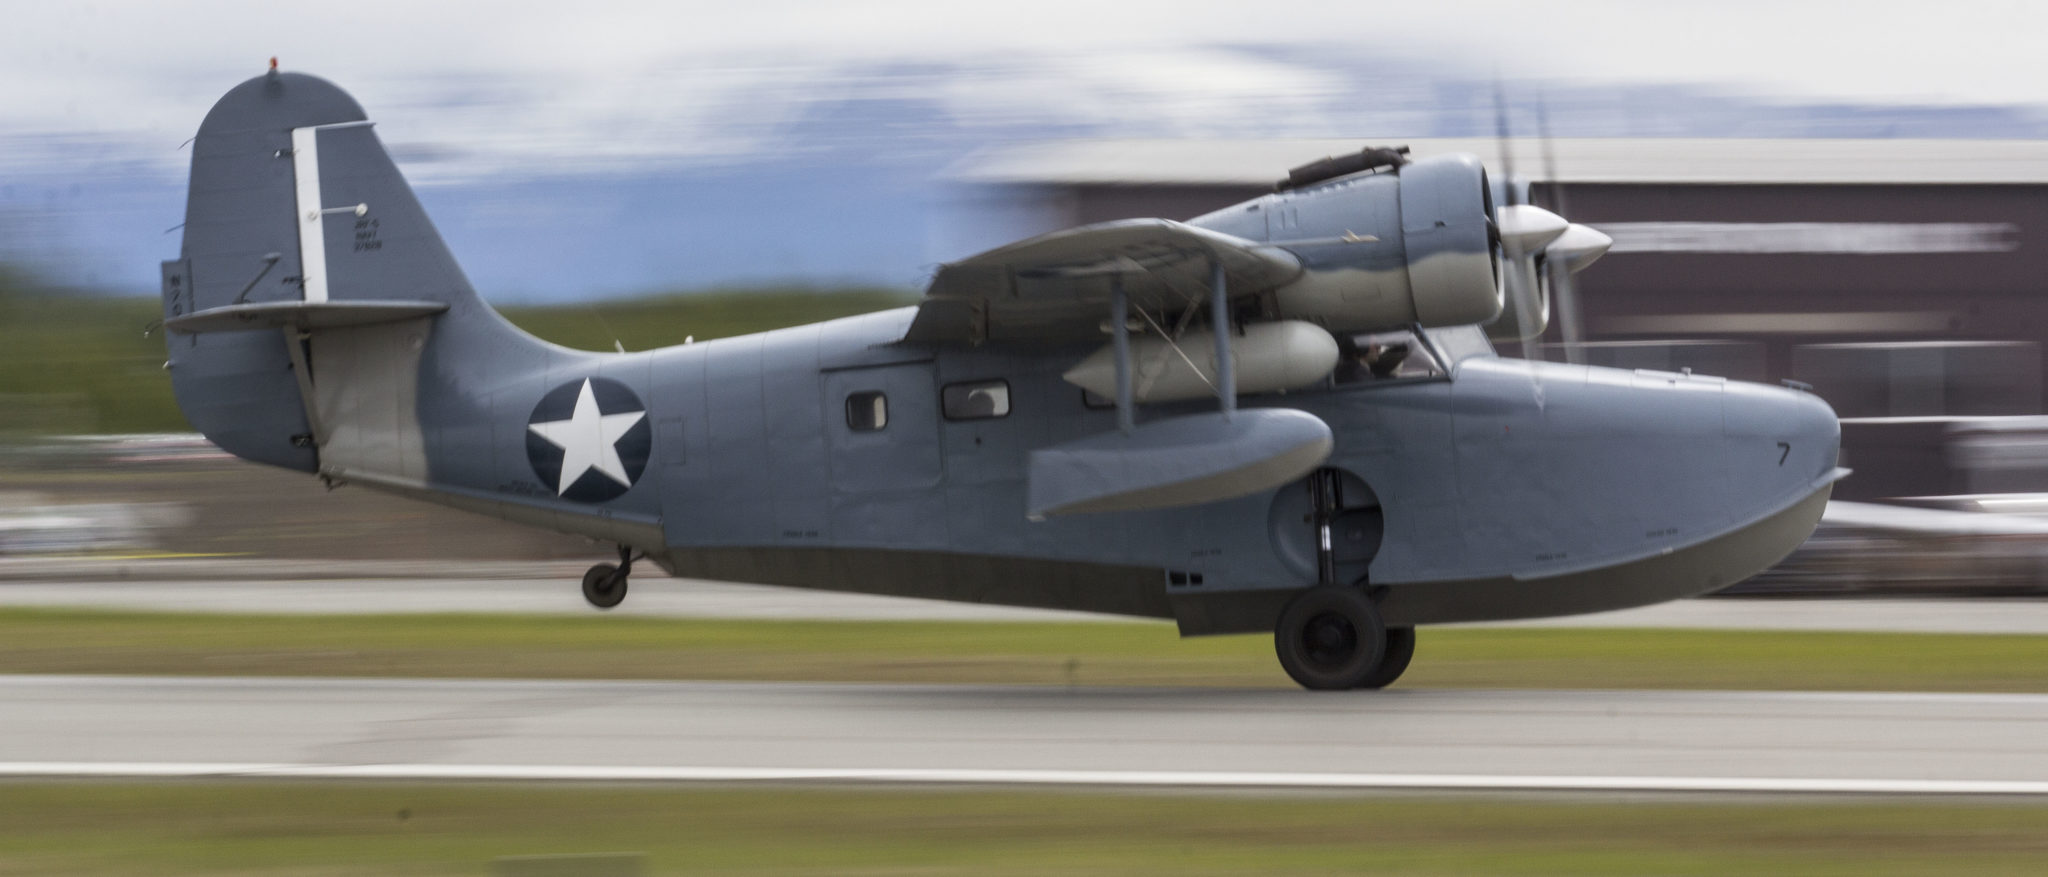 Grumman Goose at Merrill Field take off | Alaskafoto - Top Alaska photography & aircraft portraits